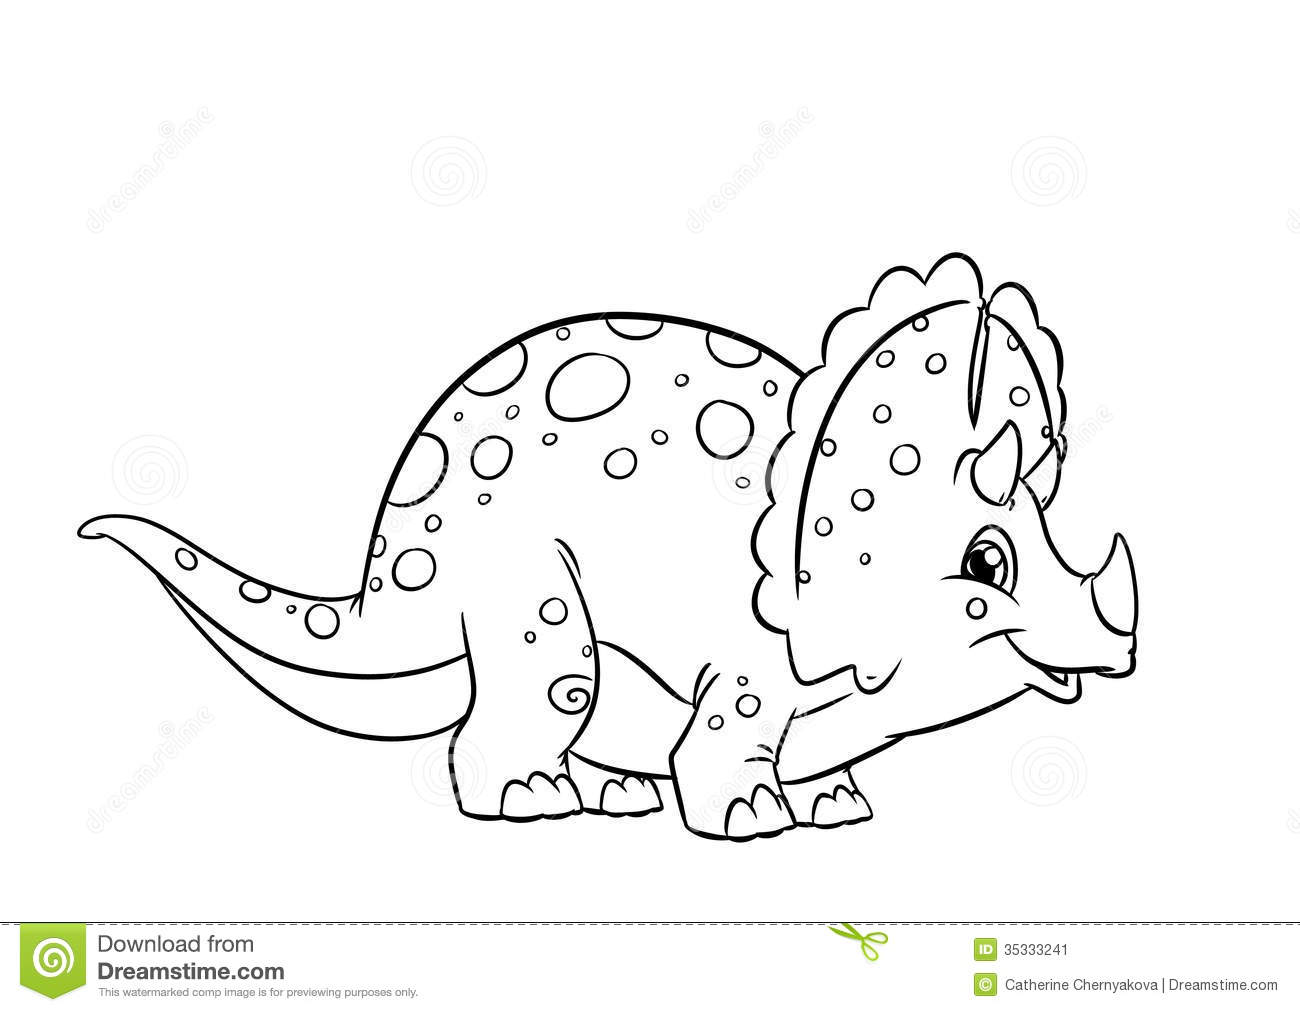 dinosaur triceratops coloring pages stock image image 35333241. Black Bedroom Furniture Sets. Home Design Ideas